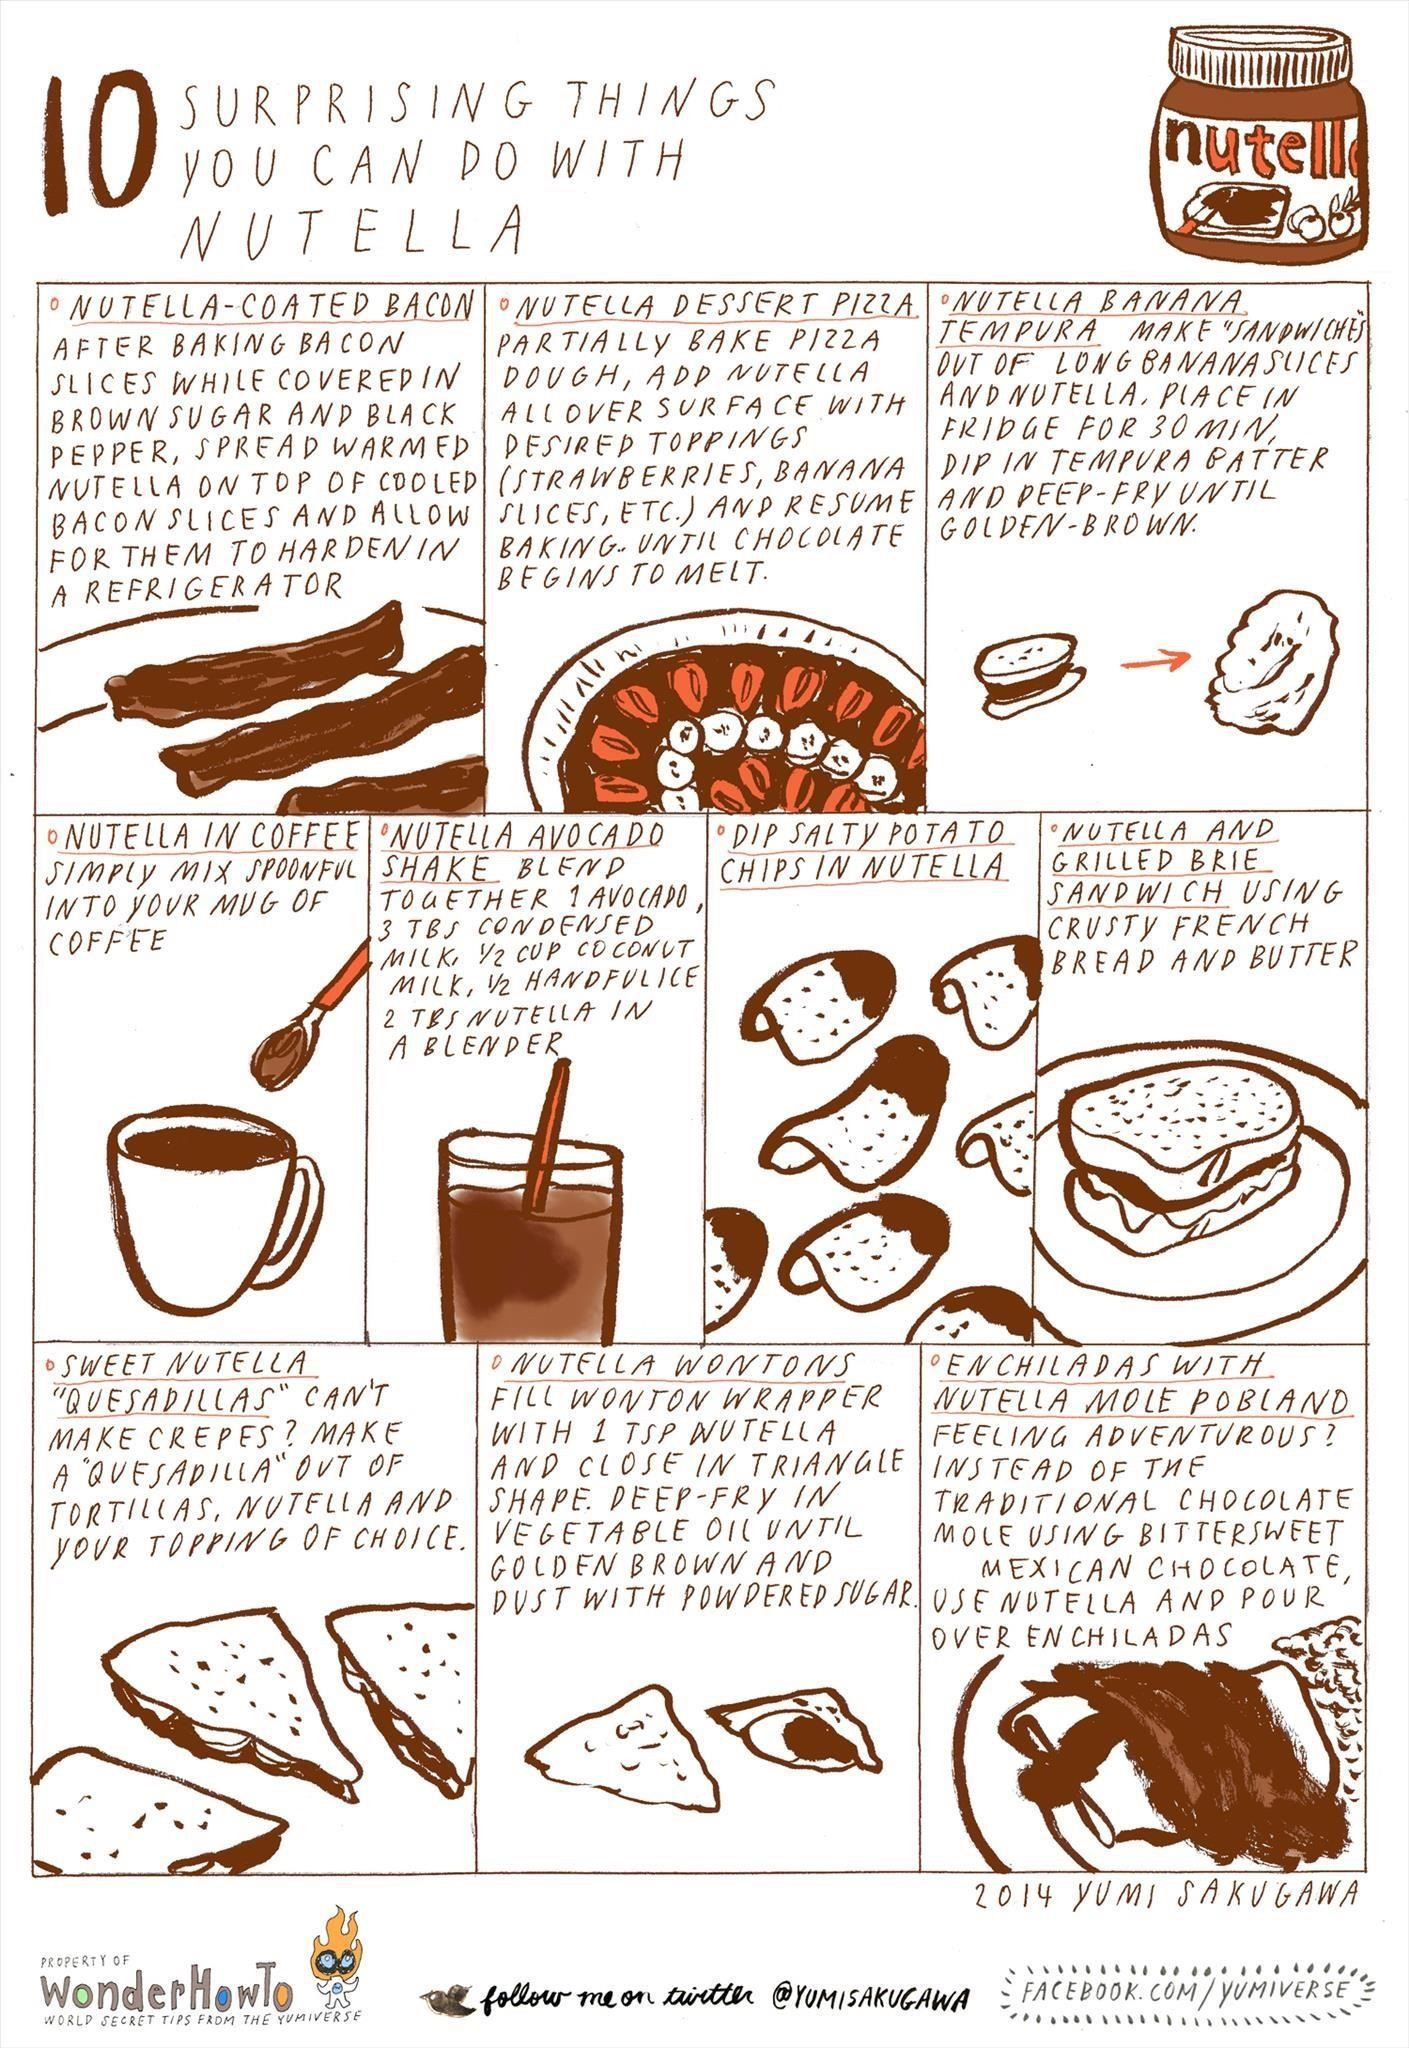 10 surprising things you can do with nutella